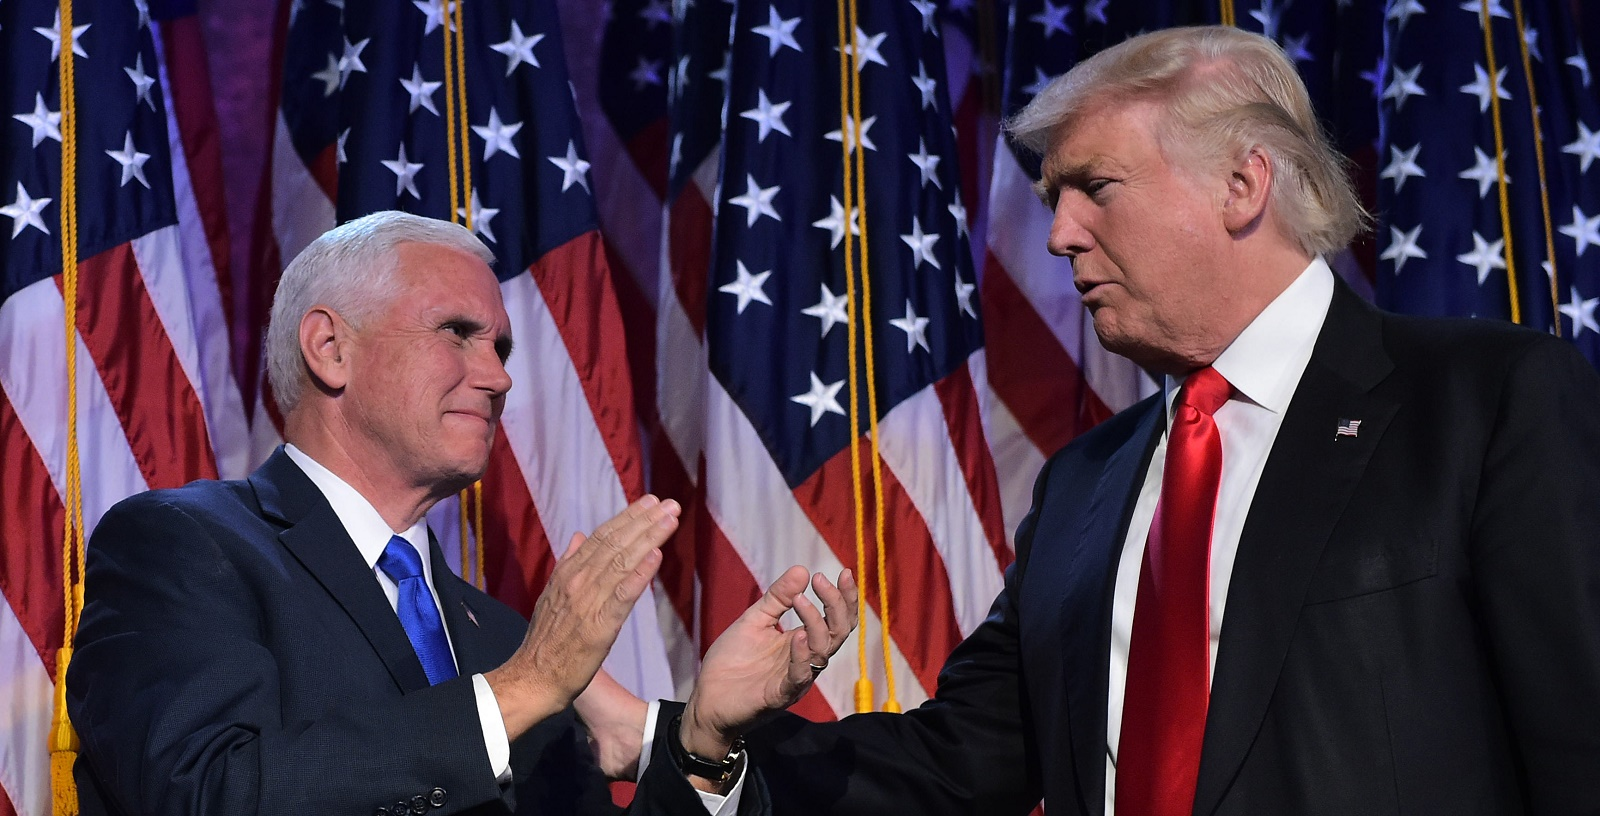 Republican presidential elect Donald Trump (R) reaches to his Vice President elect Mike Pence during election night at the New York Hilton Midtown in New York on November 9, 2016. Trump stunned America and the world Wednesday, riding a wave of populist resentment to defeat Hillary Clinton in the race to become the 45th president of the United States. / AFP / MANDEL NGAN (Photo credit should read MANDEL NGAN/AFP/Getty Images)